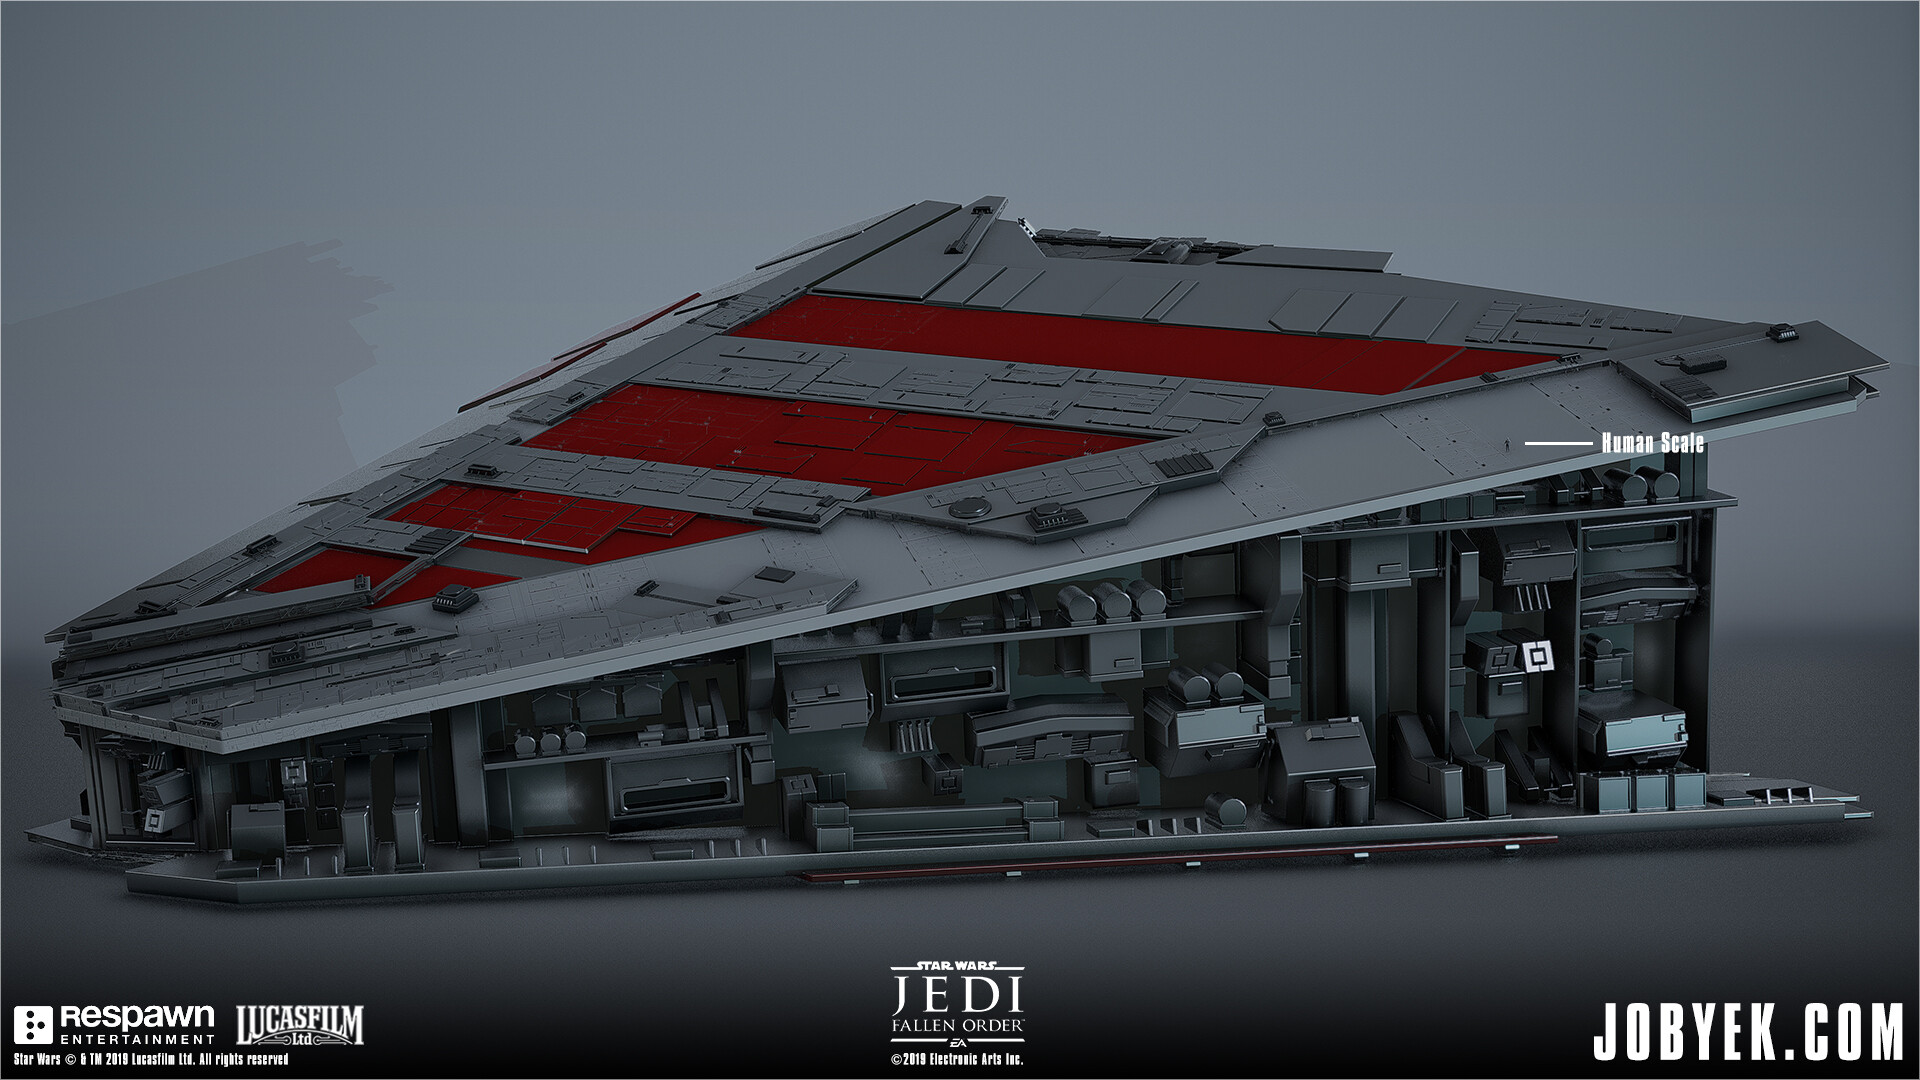 Modeling work on Venator Wing that is used and navigated on throughout the level. This was supplemented by smaller modular panels added in-engine (but shown here merged). Initial base model from DICE.